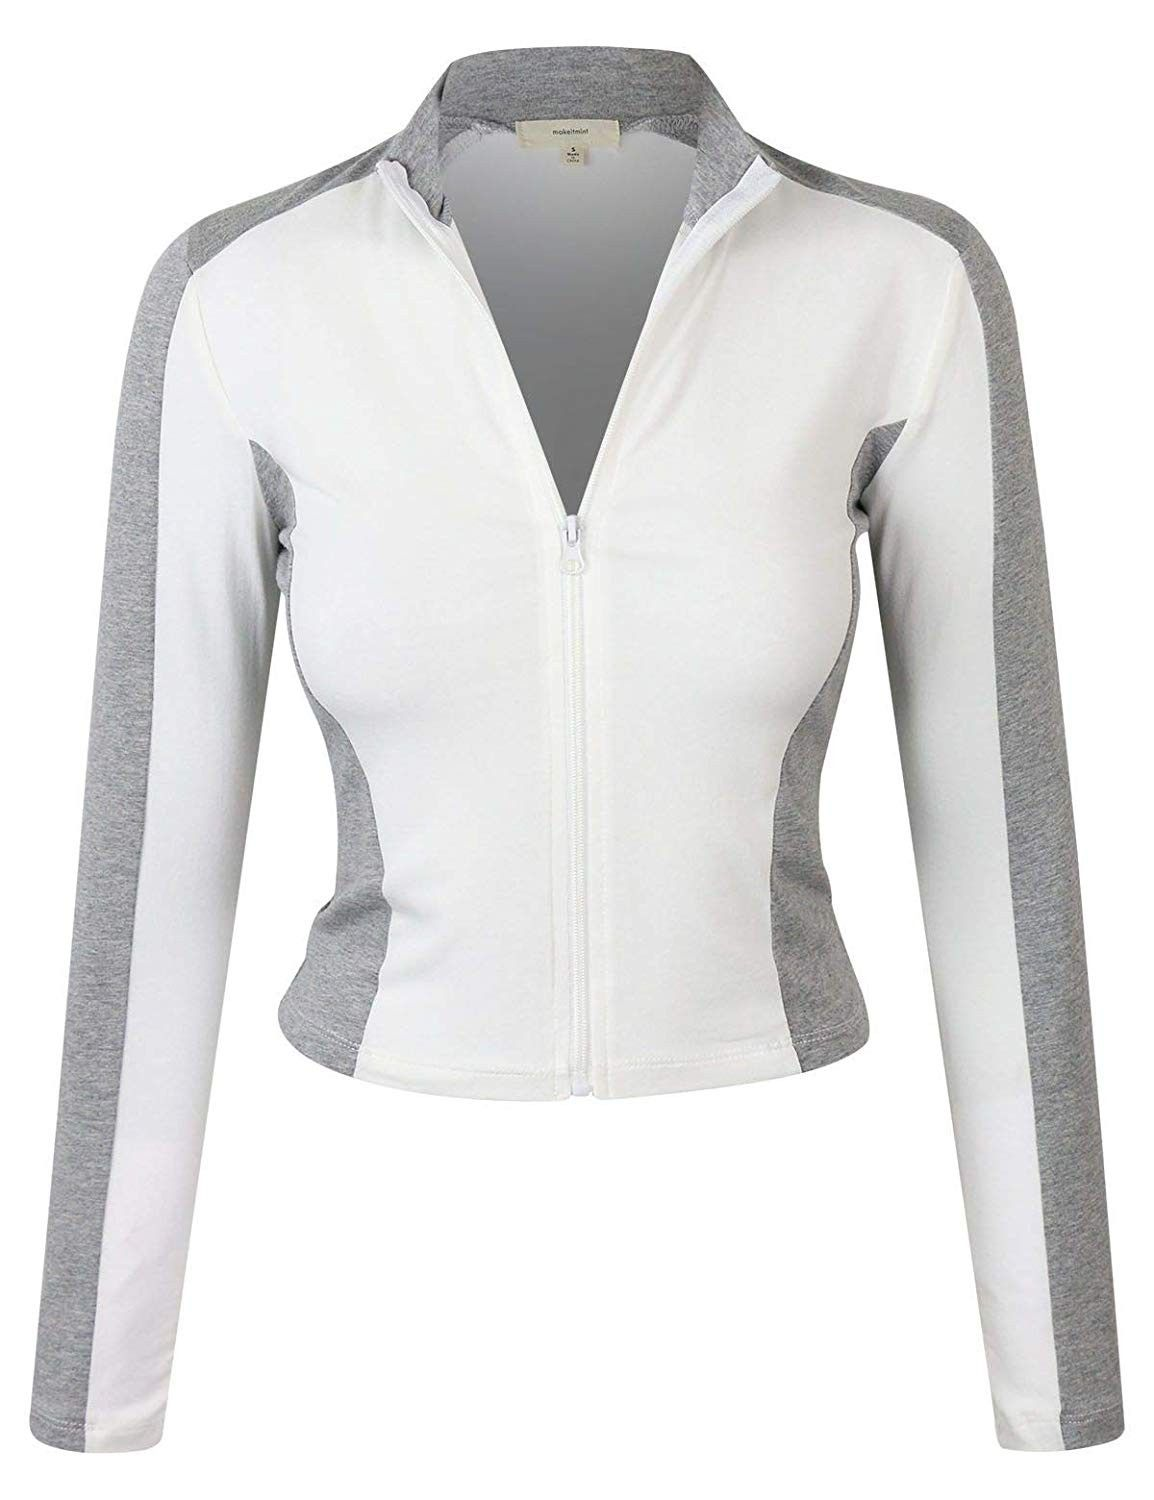 Women's Comfy Zip Up Thin Breathable Yoga Gym Work Out Track Jacket YJZ0080-WHITE-SML - C418OSE3XSY...